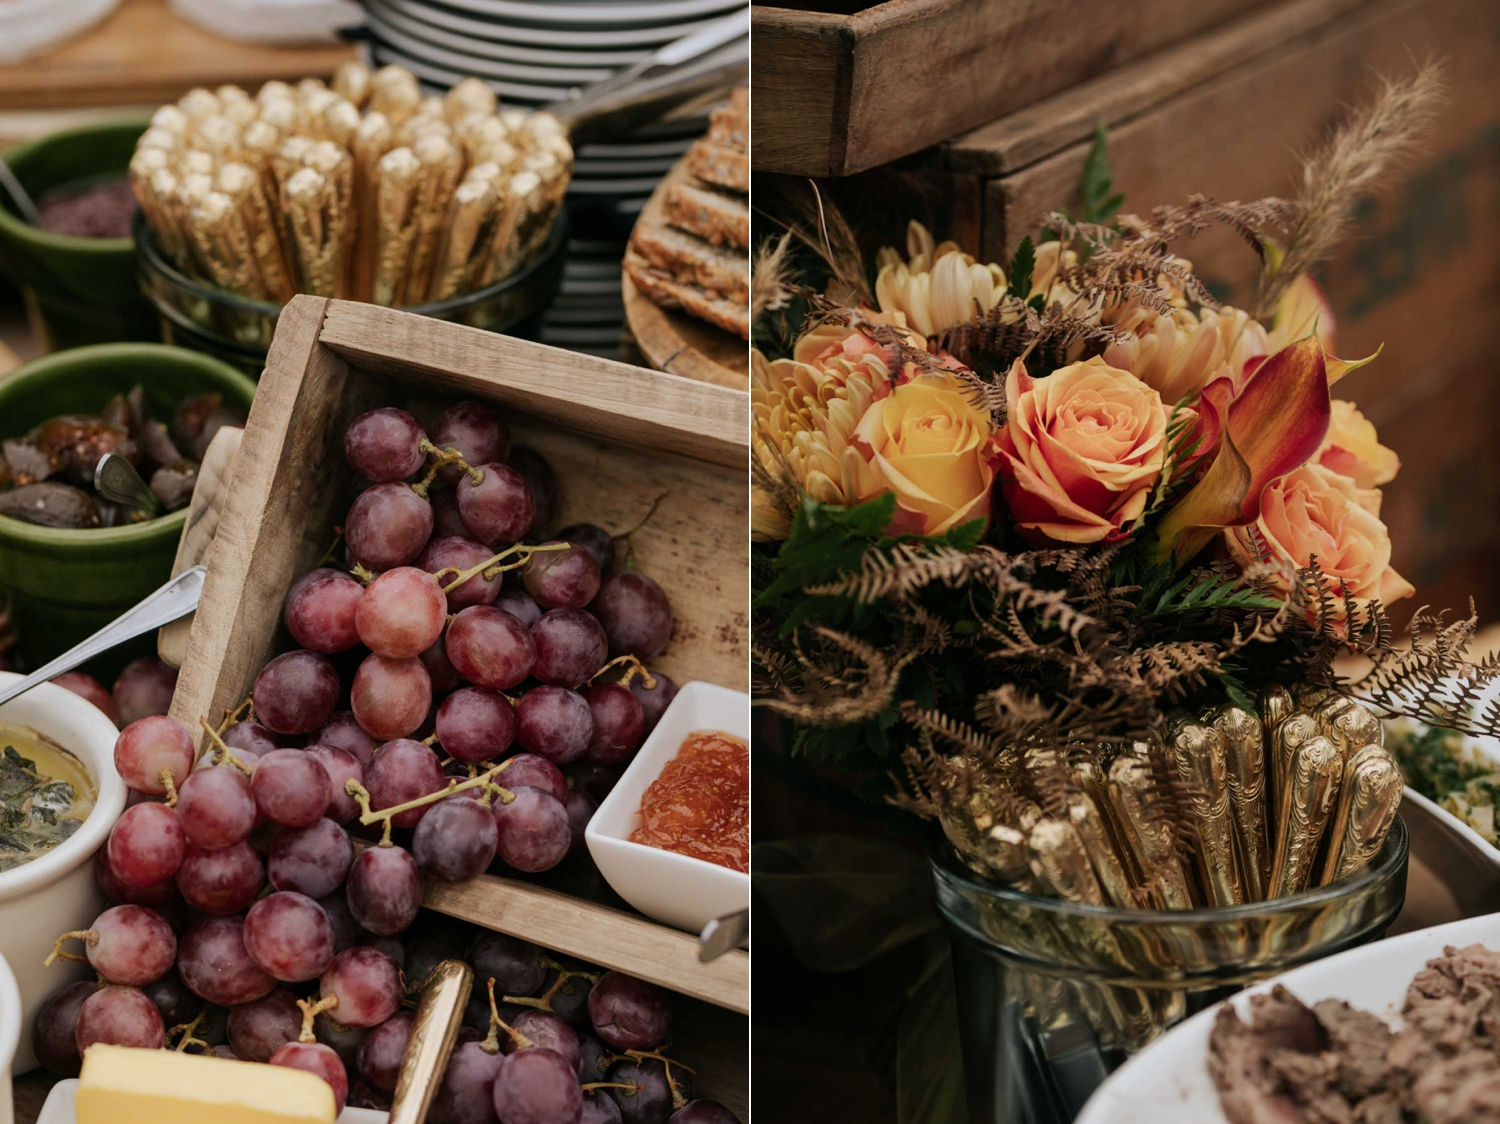 Harvest table spread for canapes and snacks during cocktail hour after wedding ceremony. Vintage gold cutlery, dips and spreads and fresh fruit.